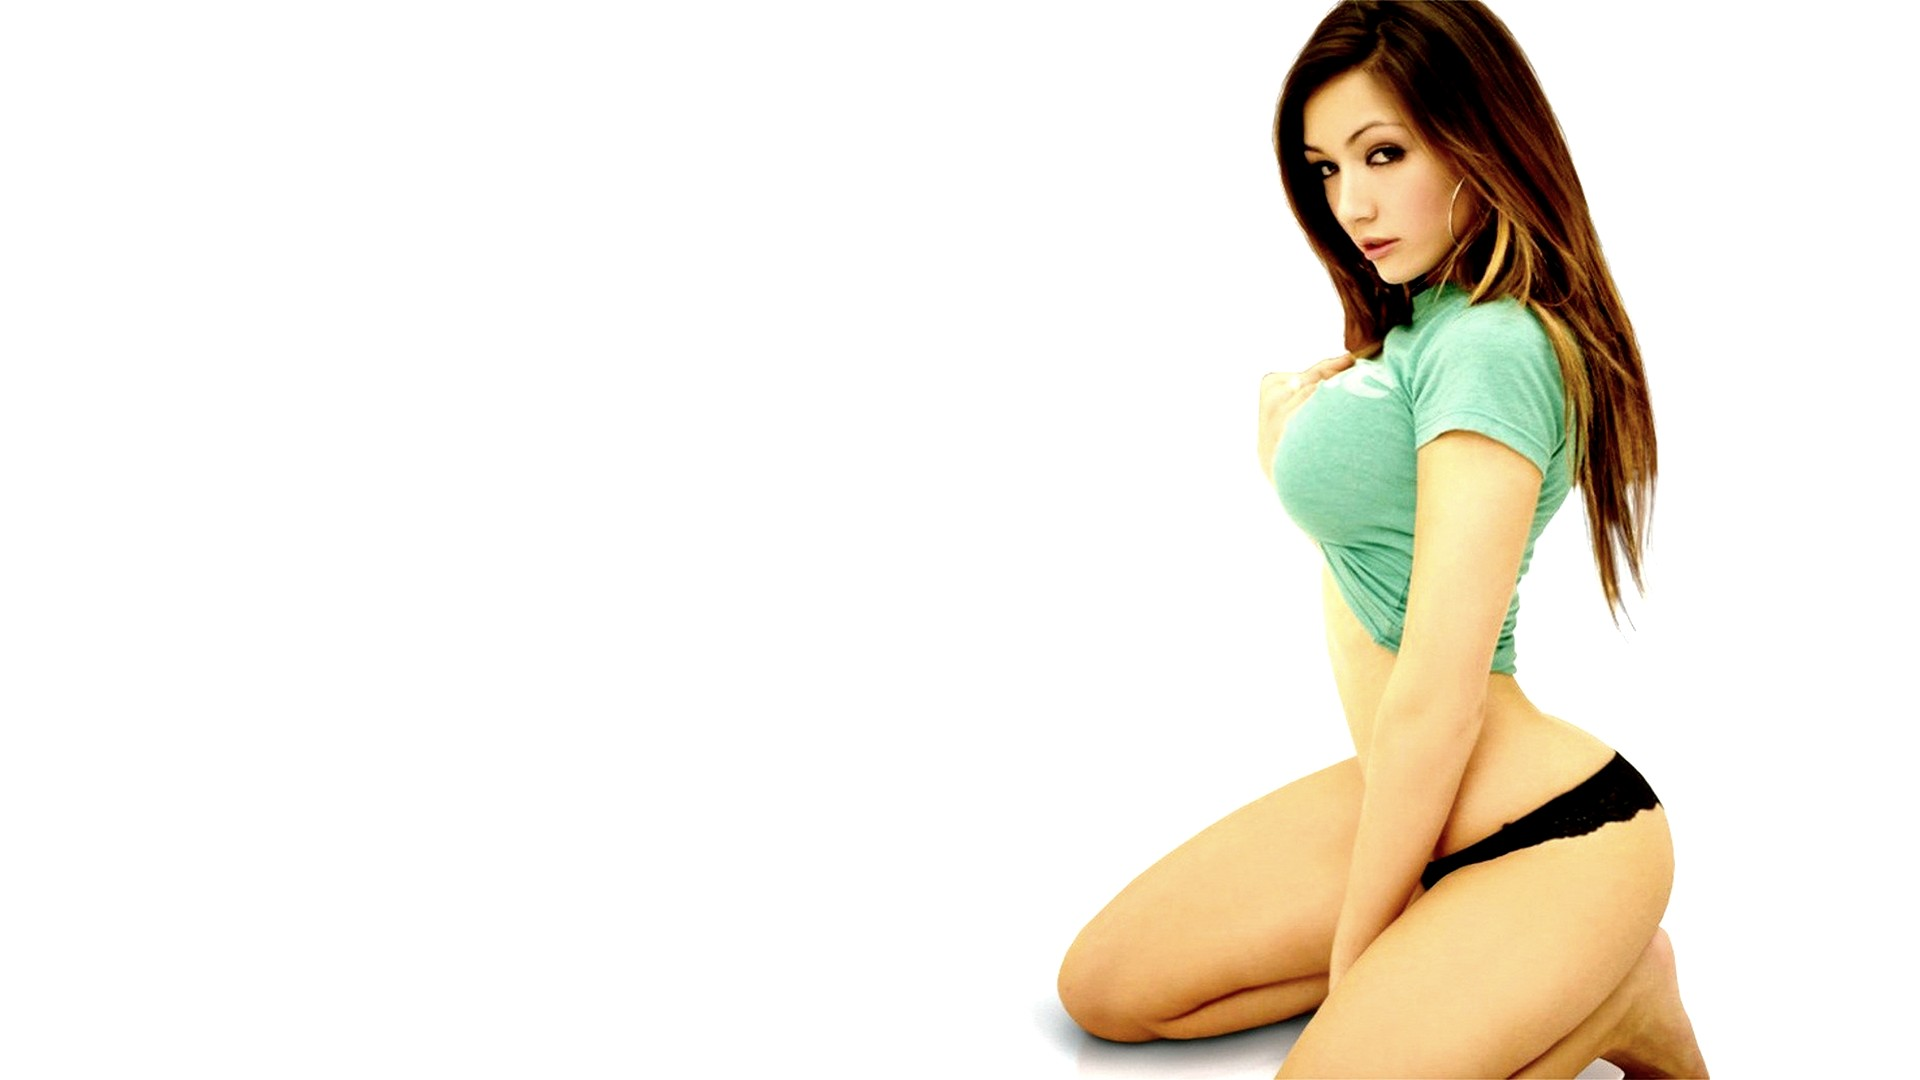 Misa Campo 2 Wallpapers